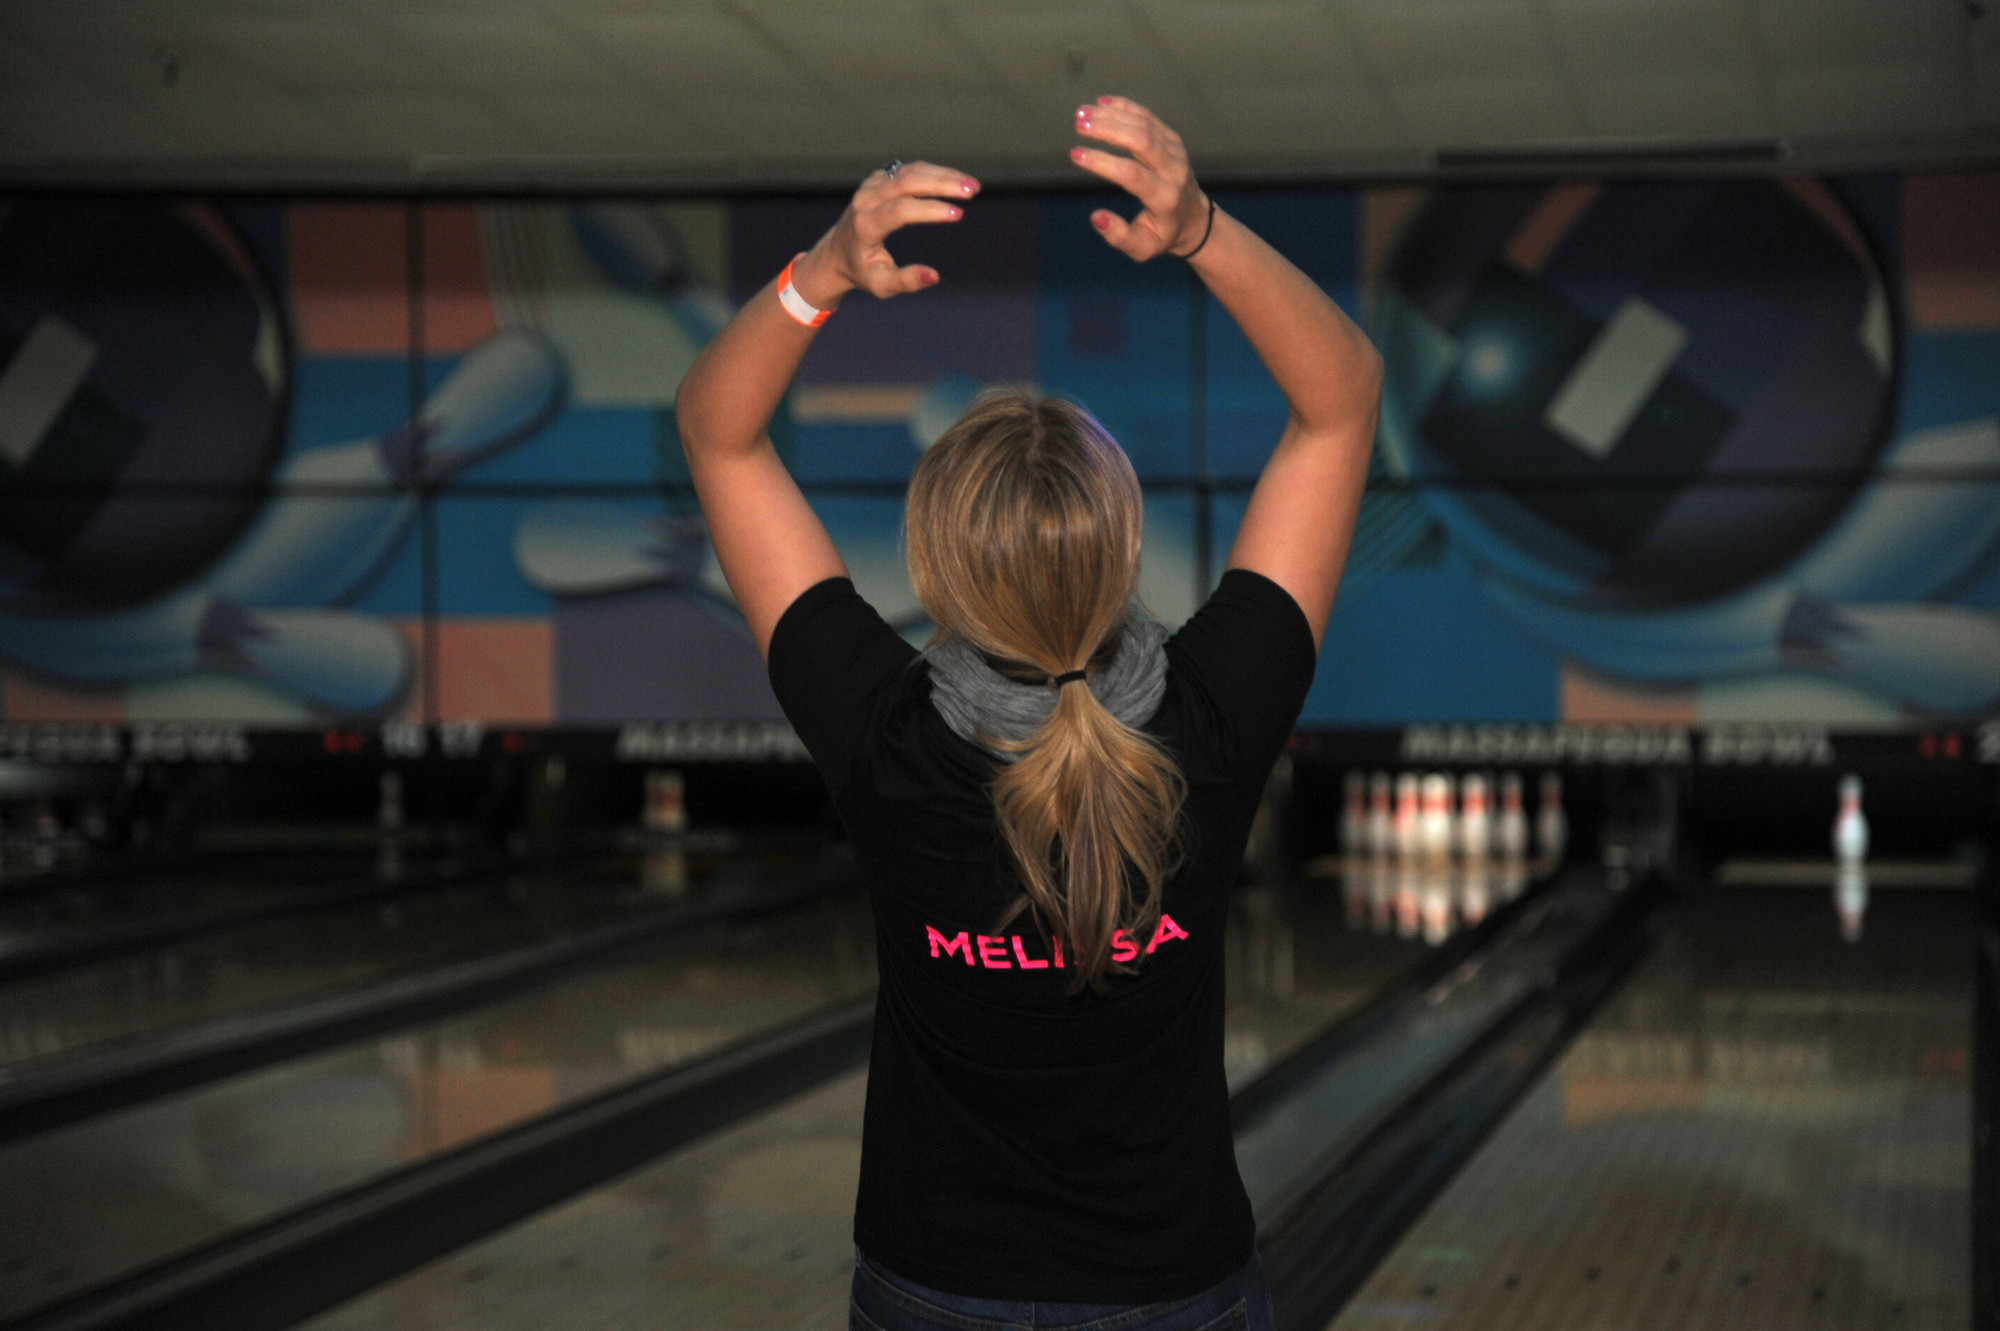 Mannetta enjoyed bowling - even when she was just one pin away from a strike.